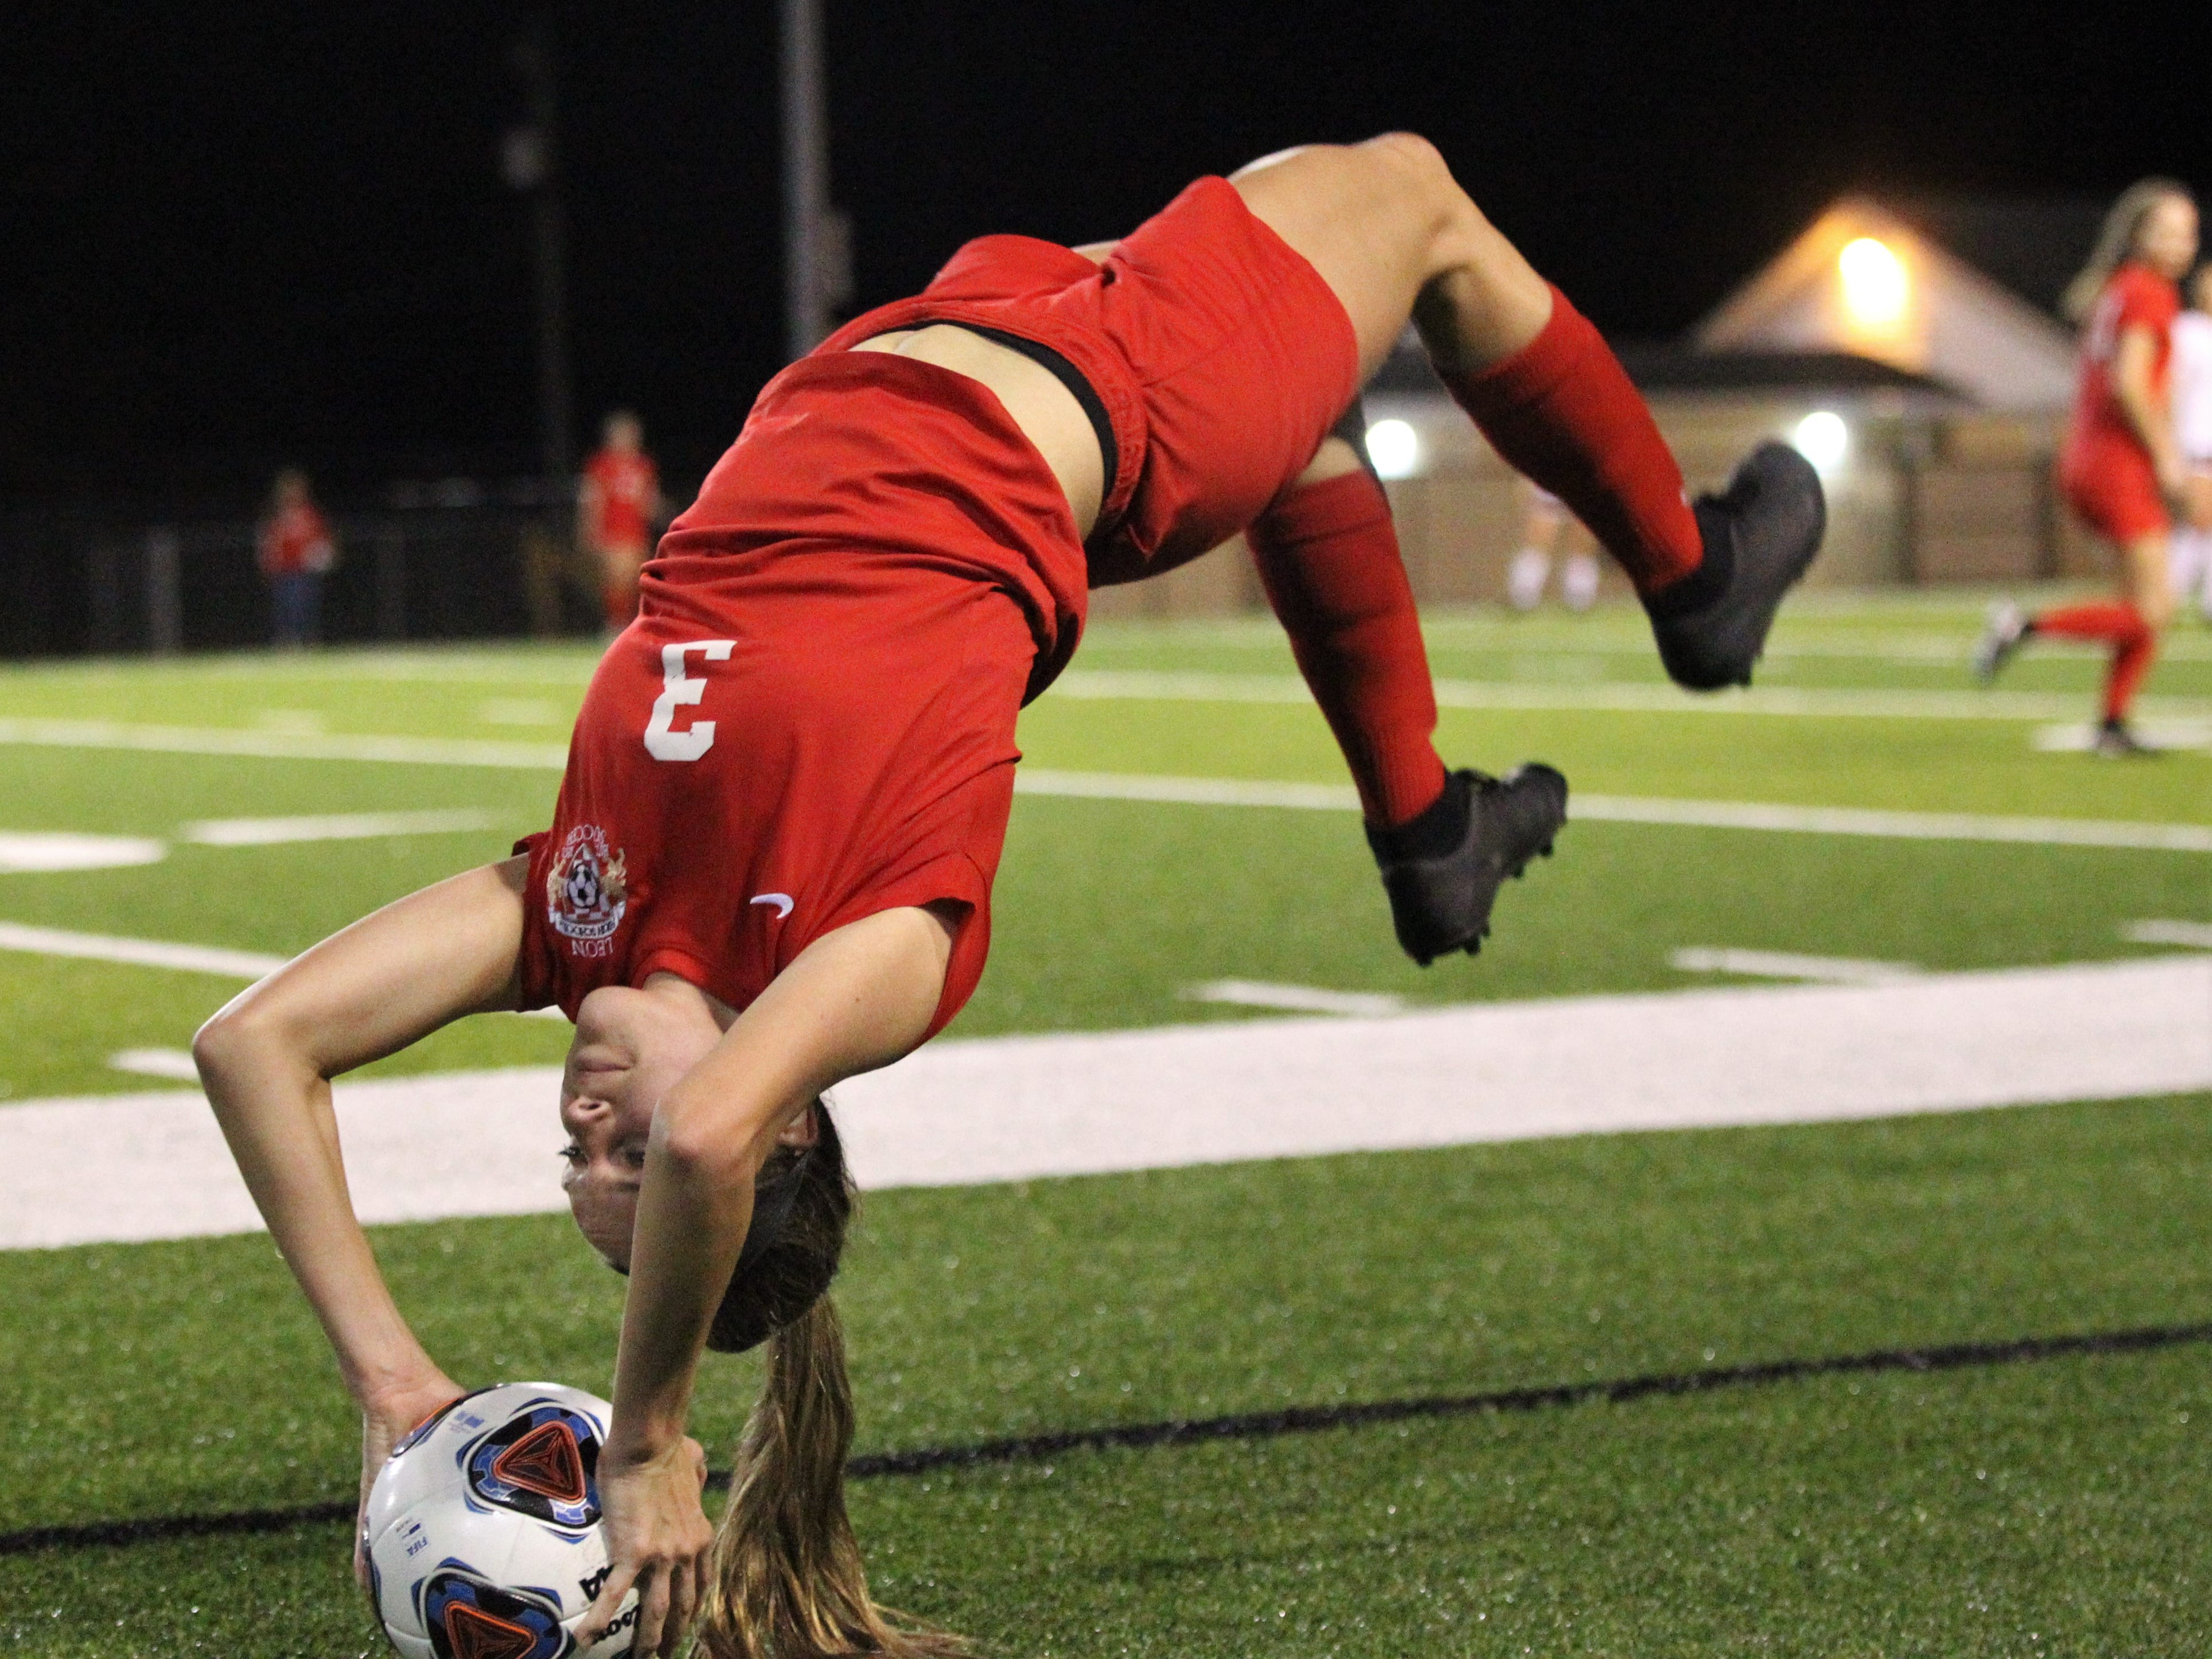 Leon senior Madison Rumenik performs a flip throw-in as Niceville's girls soccer team beat Leon 1-0 in a Region 1-4A semifinal at Gene Cox Stadium on Jan. 8, 2019.